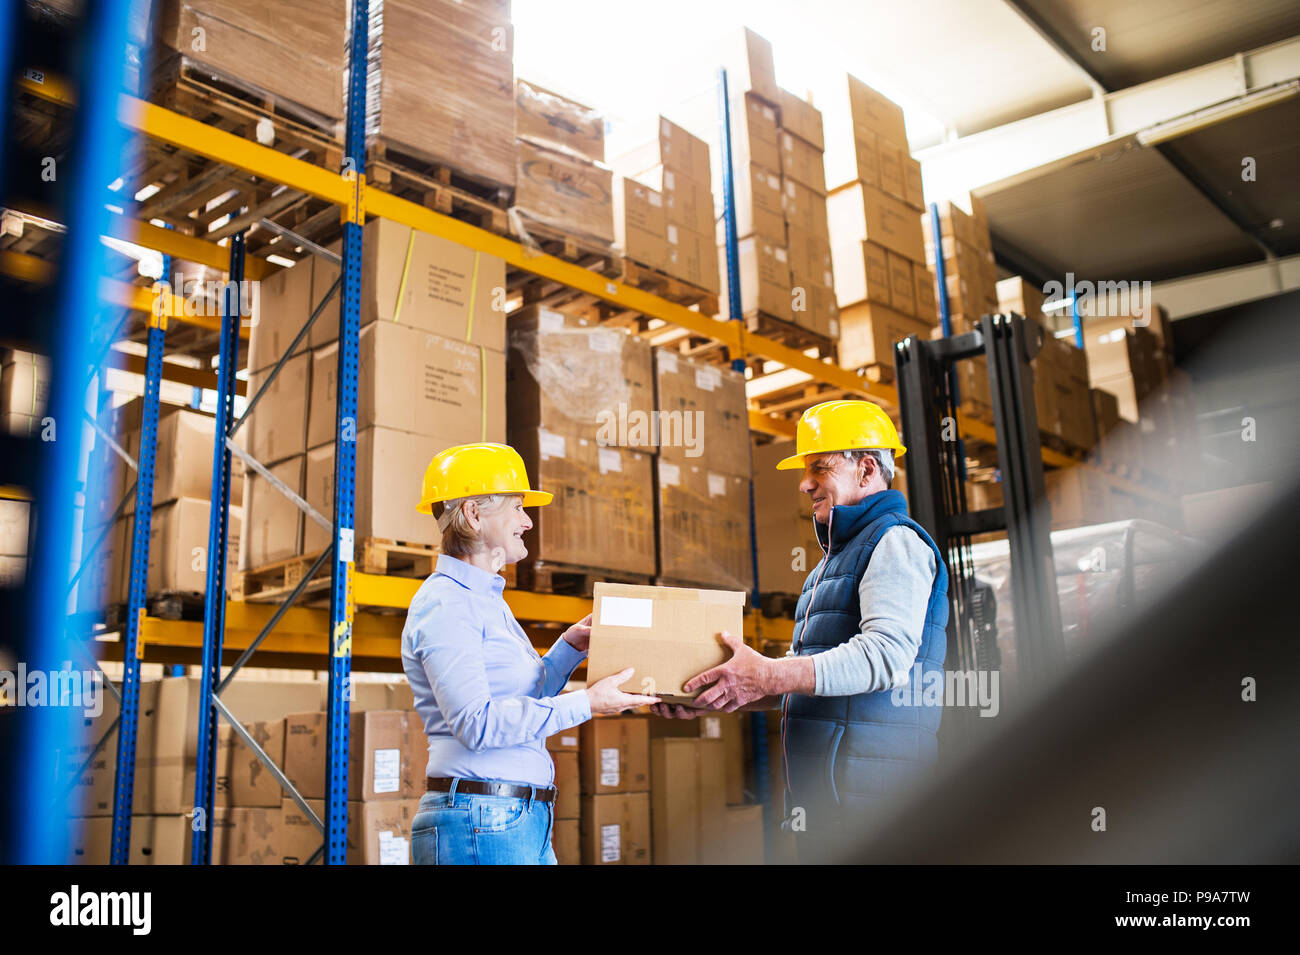 Senior managers or supervisors working together in a warehouse. - Stock Image